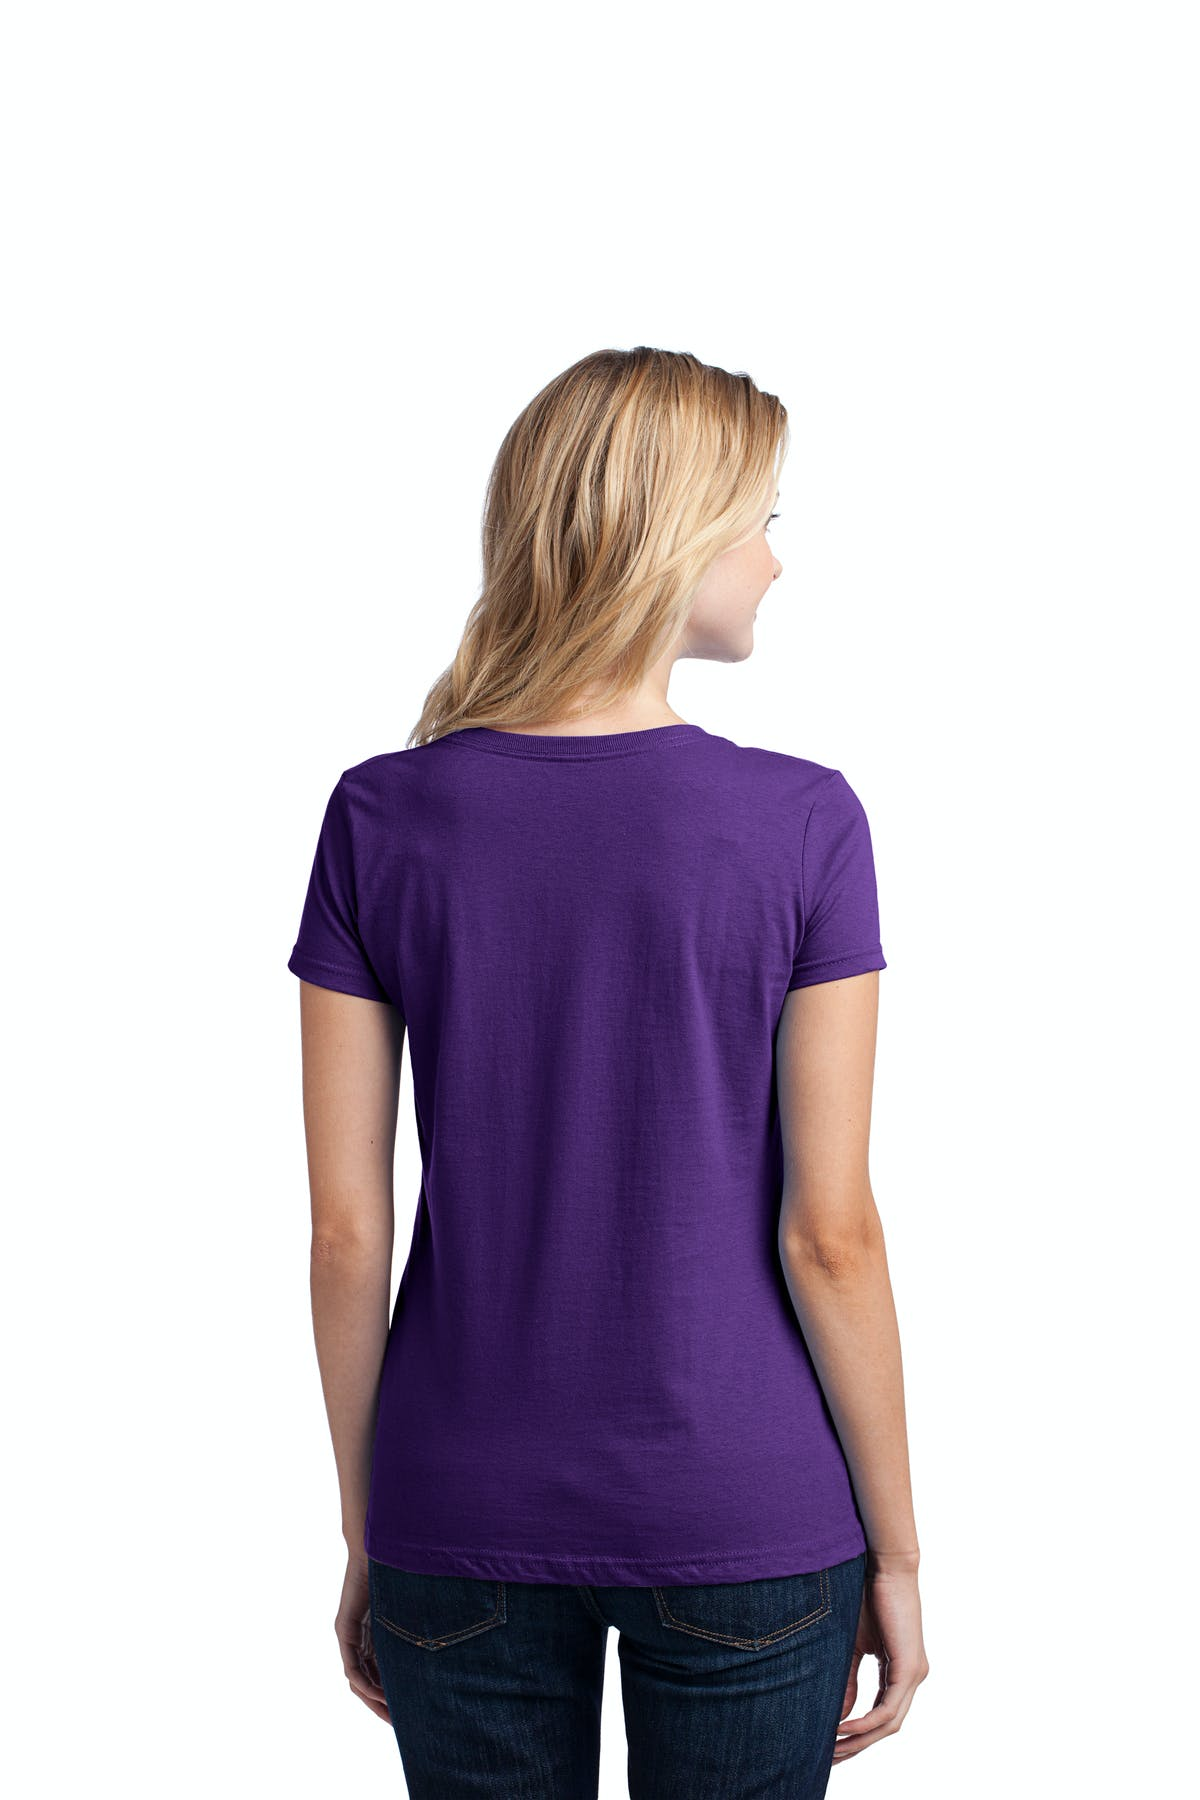 Fruit of the Loom® Ladies HD Cotton™ 100% Cotton T-Shirt - sold by PRINT CITY GRAPHICS, INC